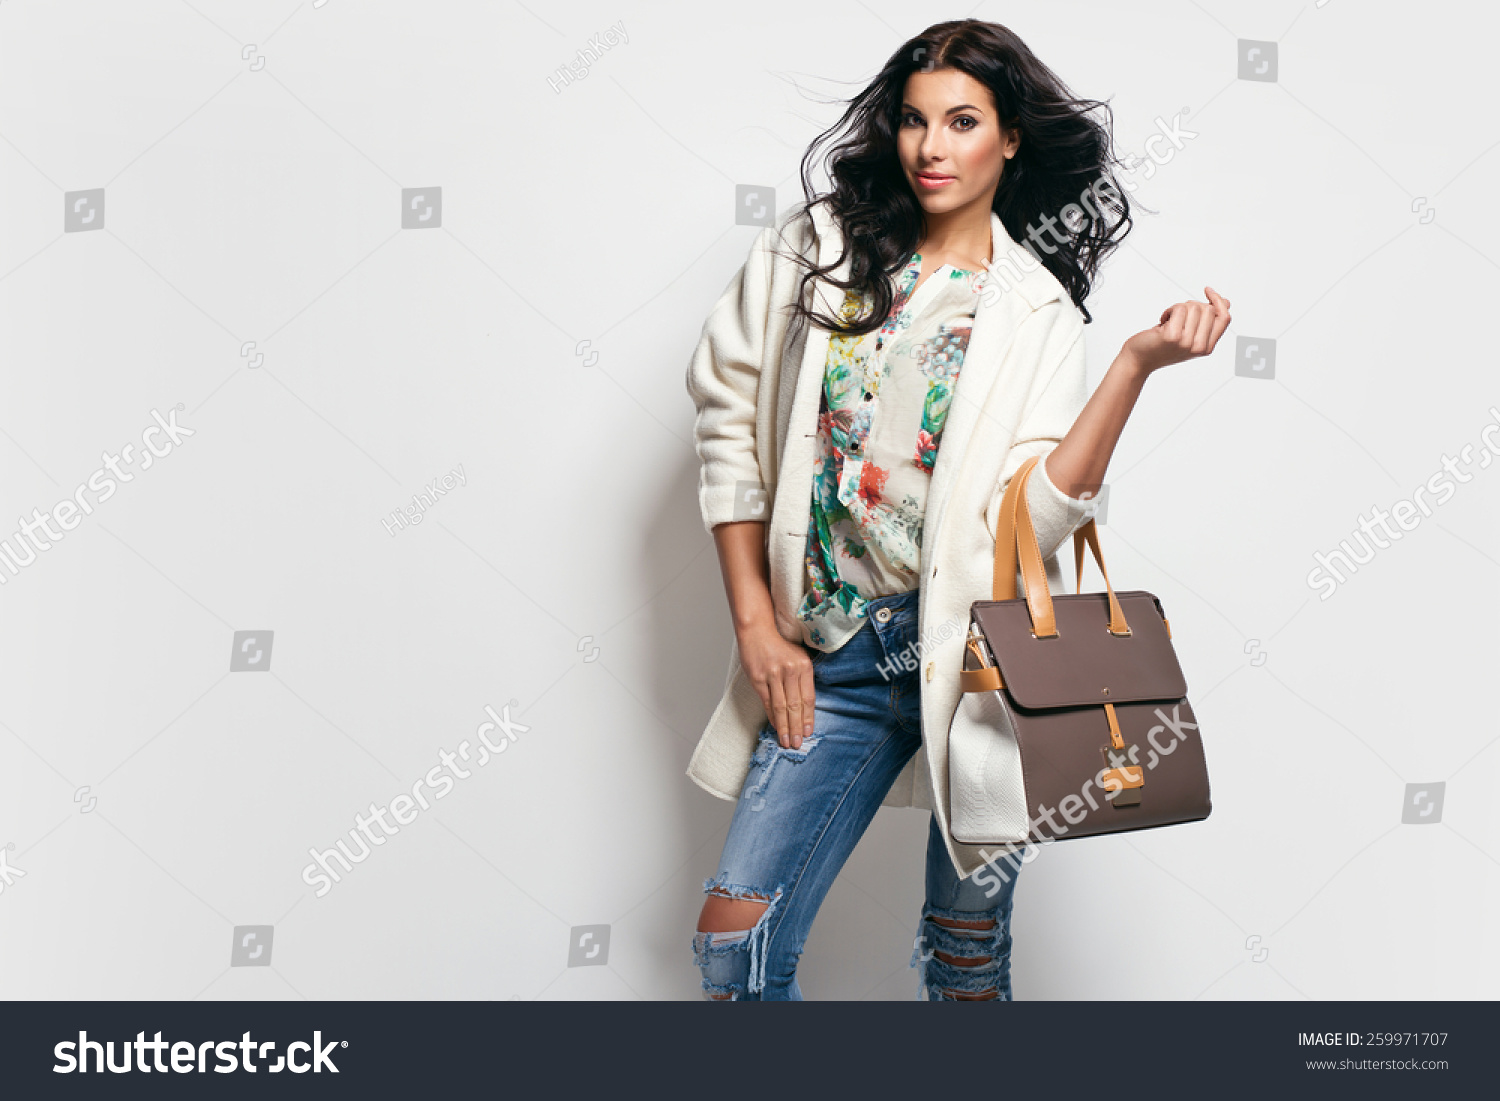 Fashion Brunette Model Nice Clothes Posing Stock Photo ...